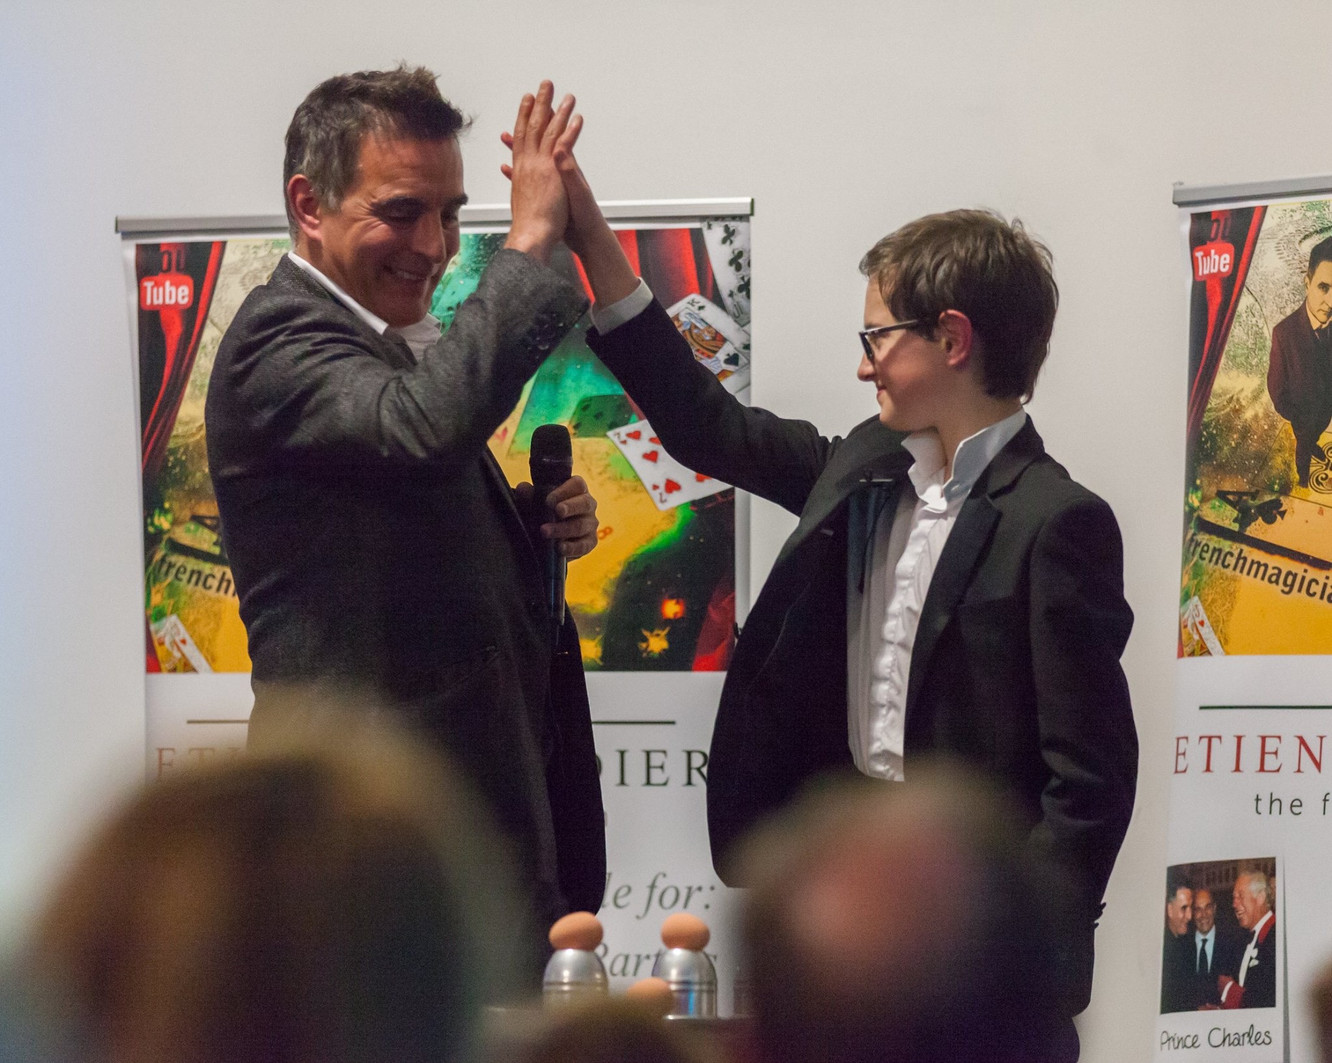 On stage with Etienne Pradier - the French Magician